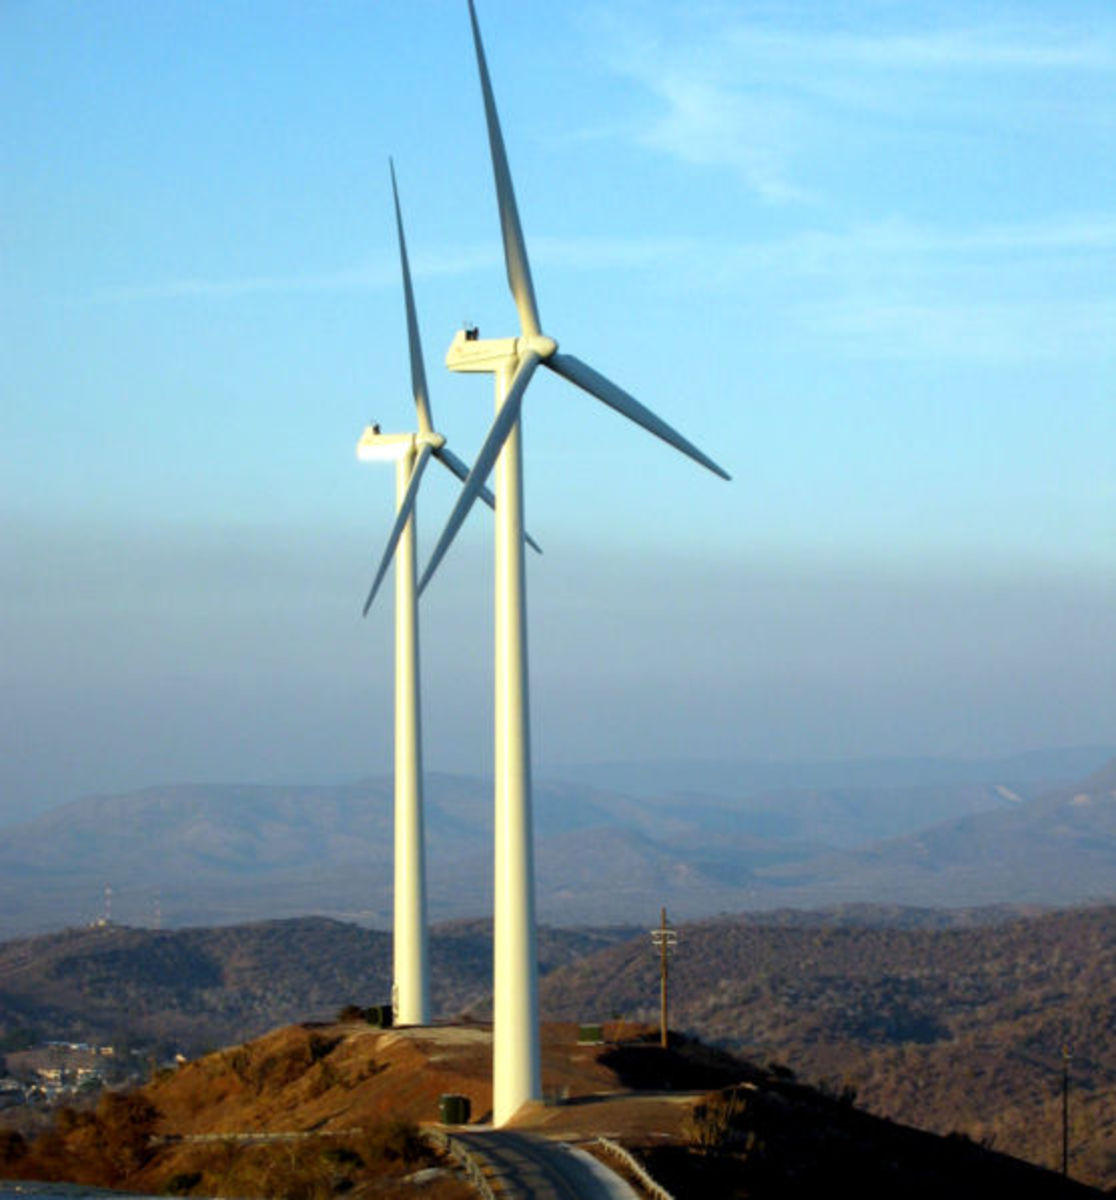 Wind energy has a somewhat promising future. These devices are green, however they are highly unreliable and inefficient.